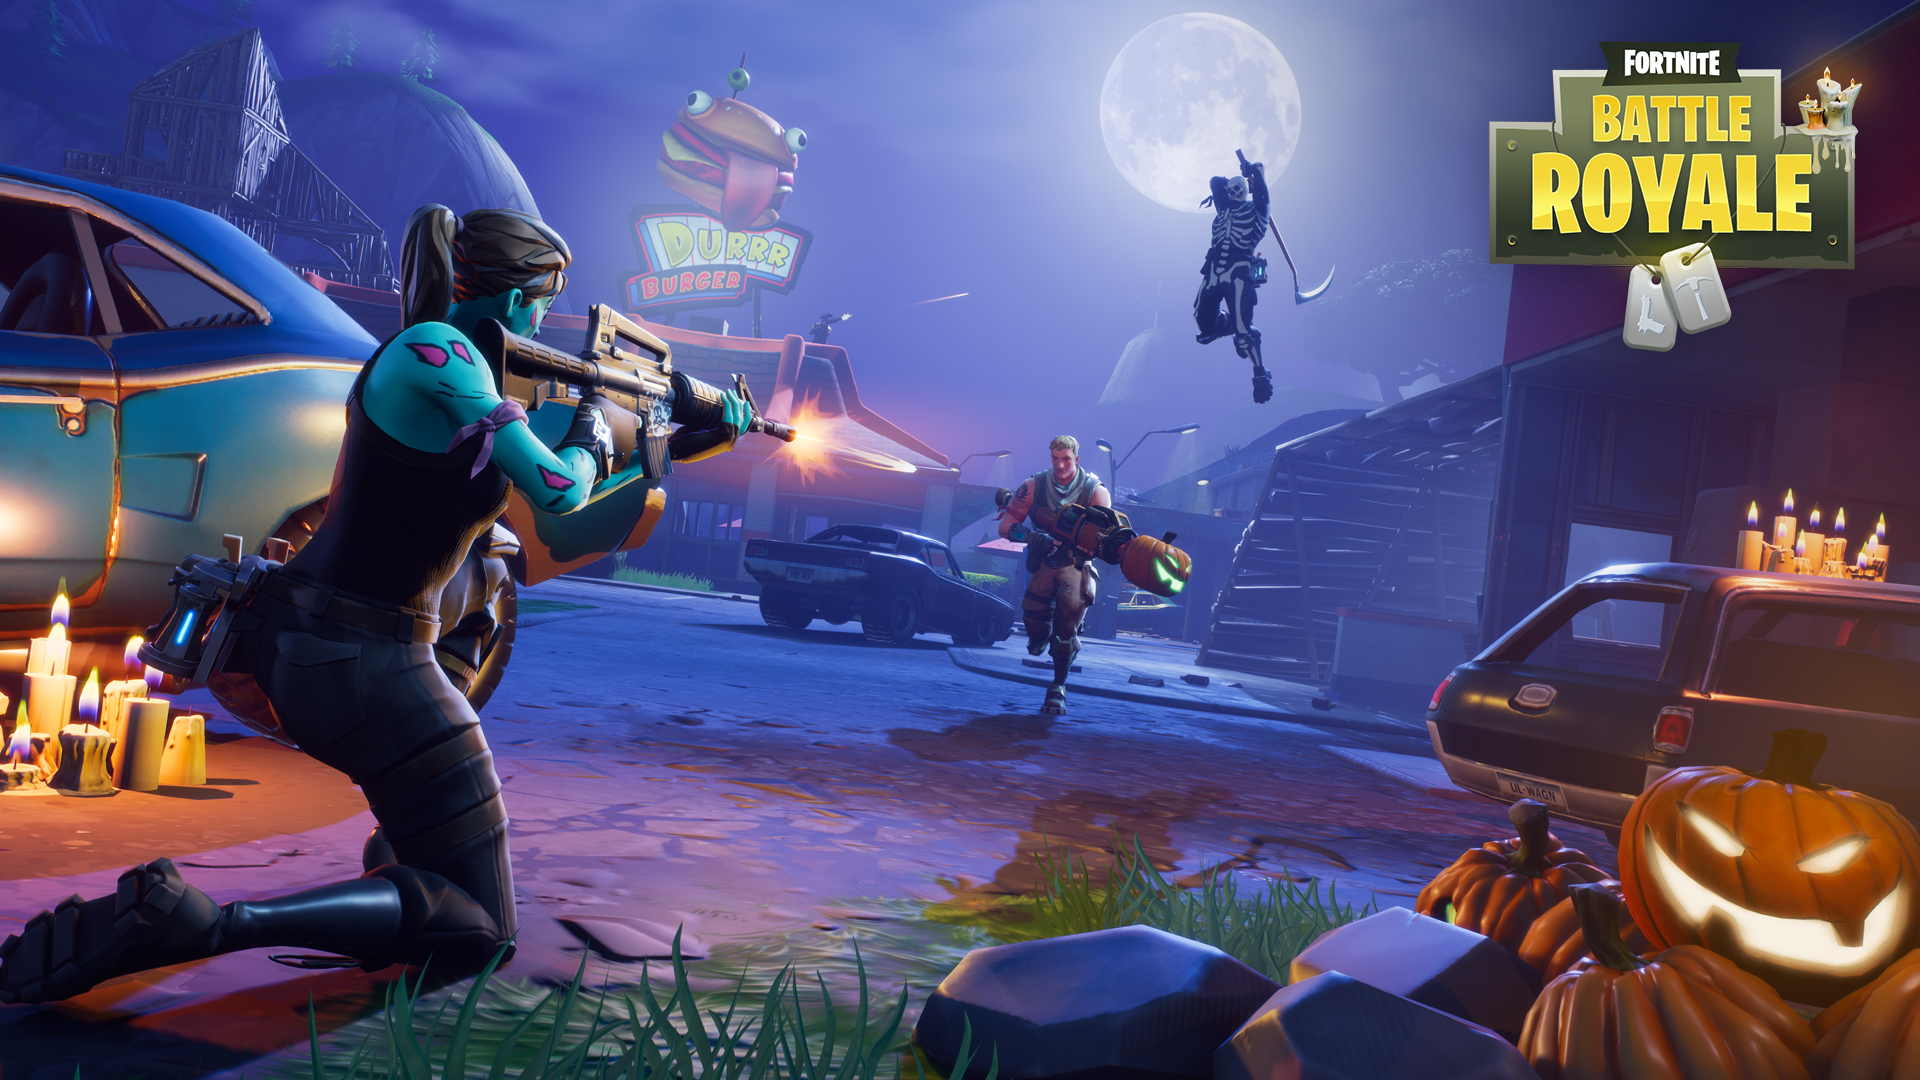 fortnite battle royale game wallpaper 62258